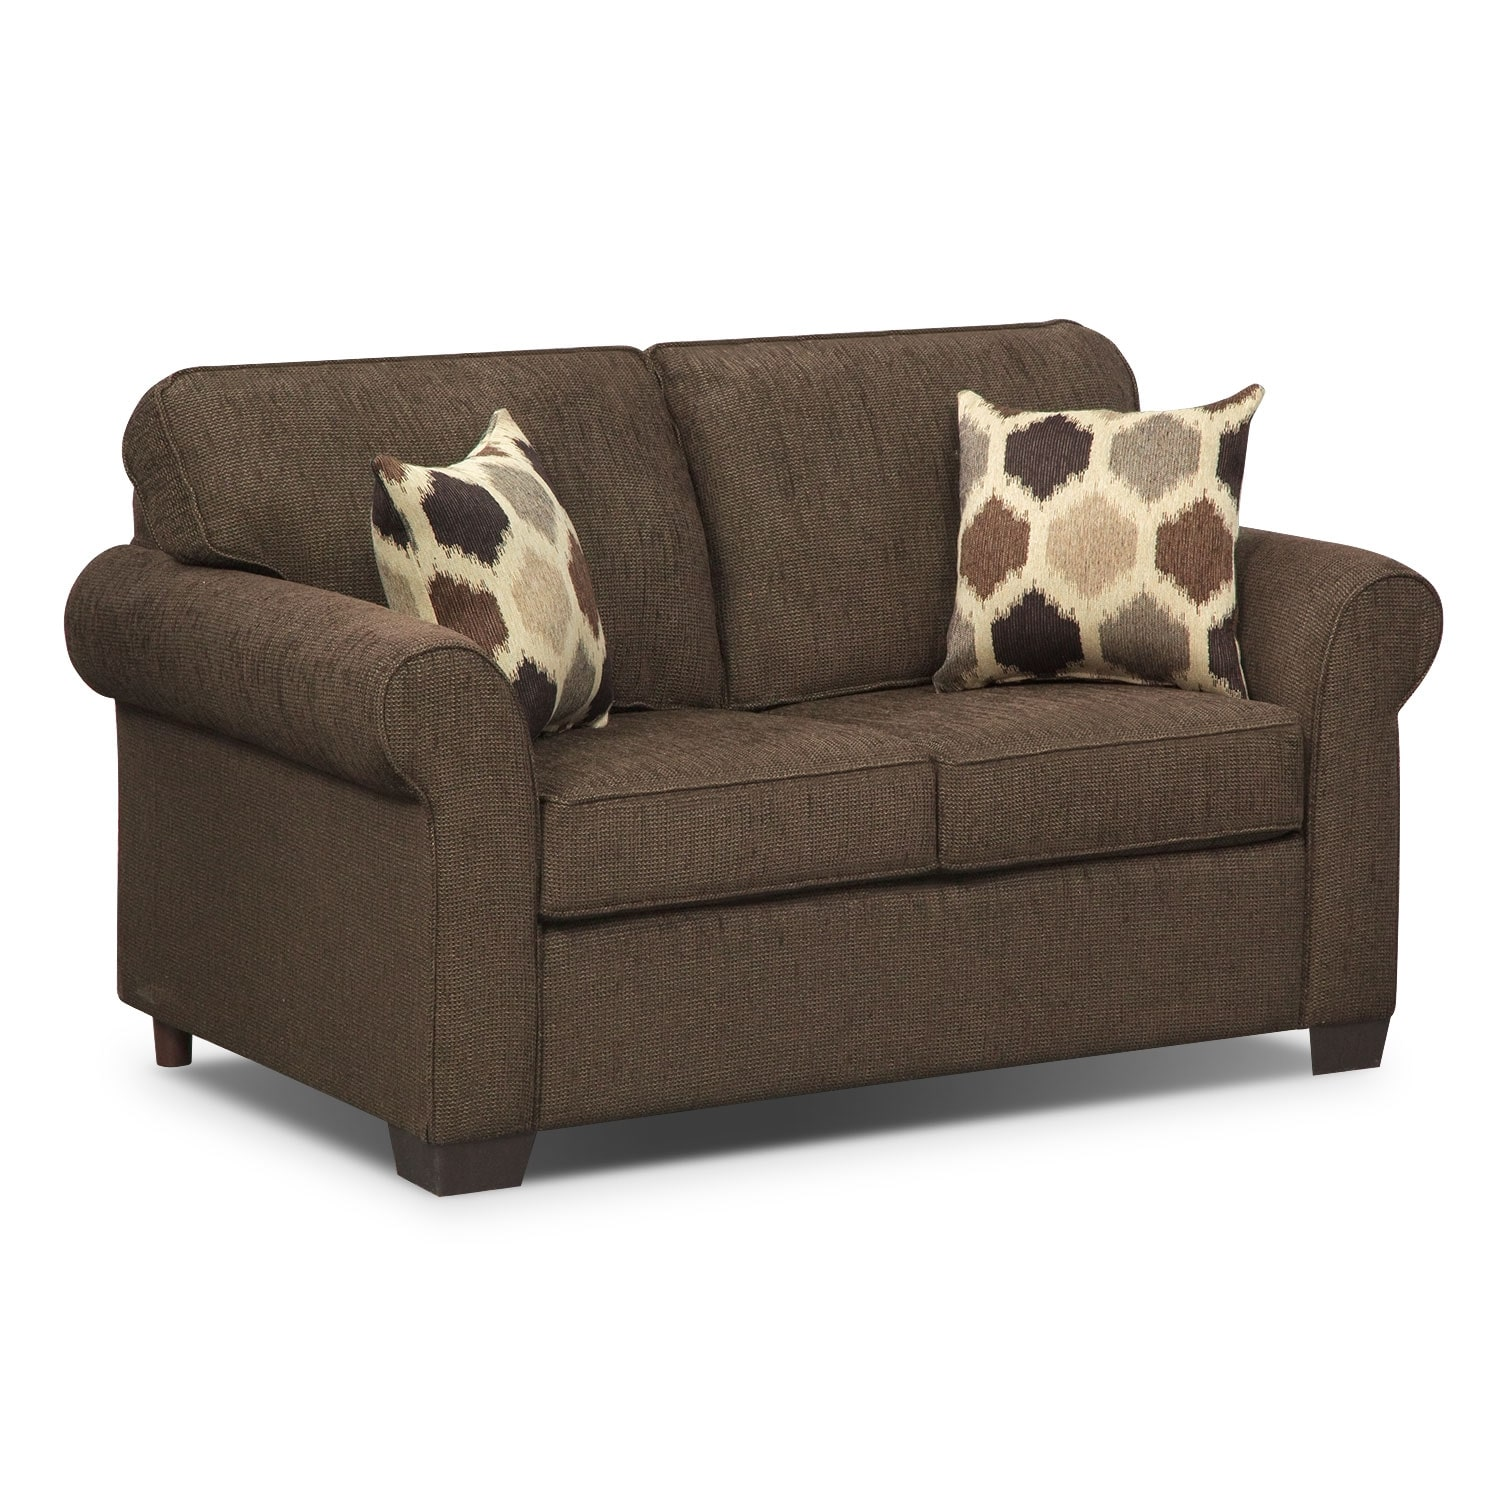 Fletcher Ii Twin Memory Foam Sleeper Sofa Value City Furniture